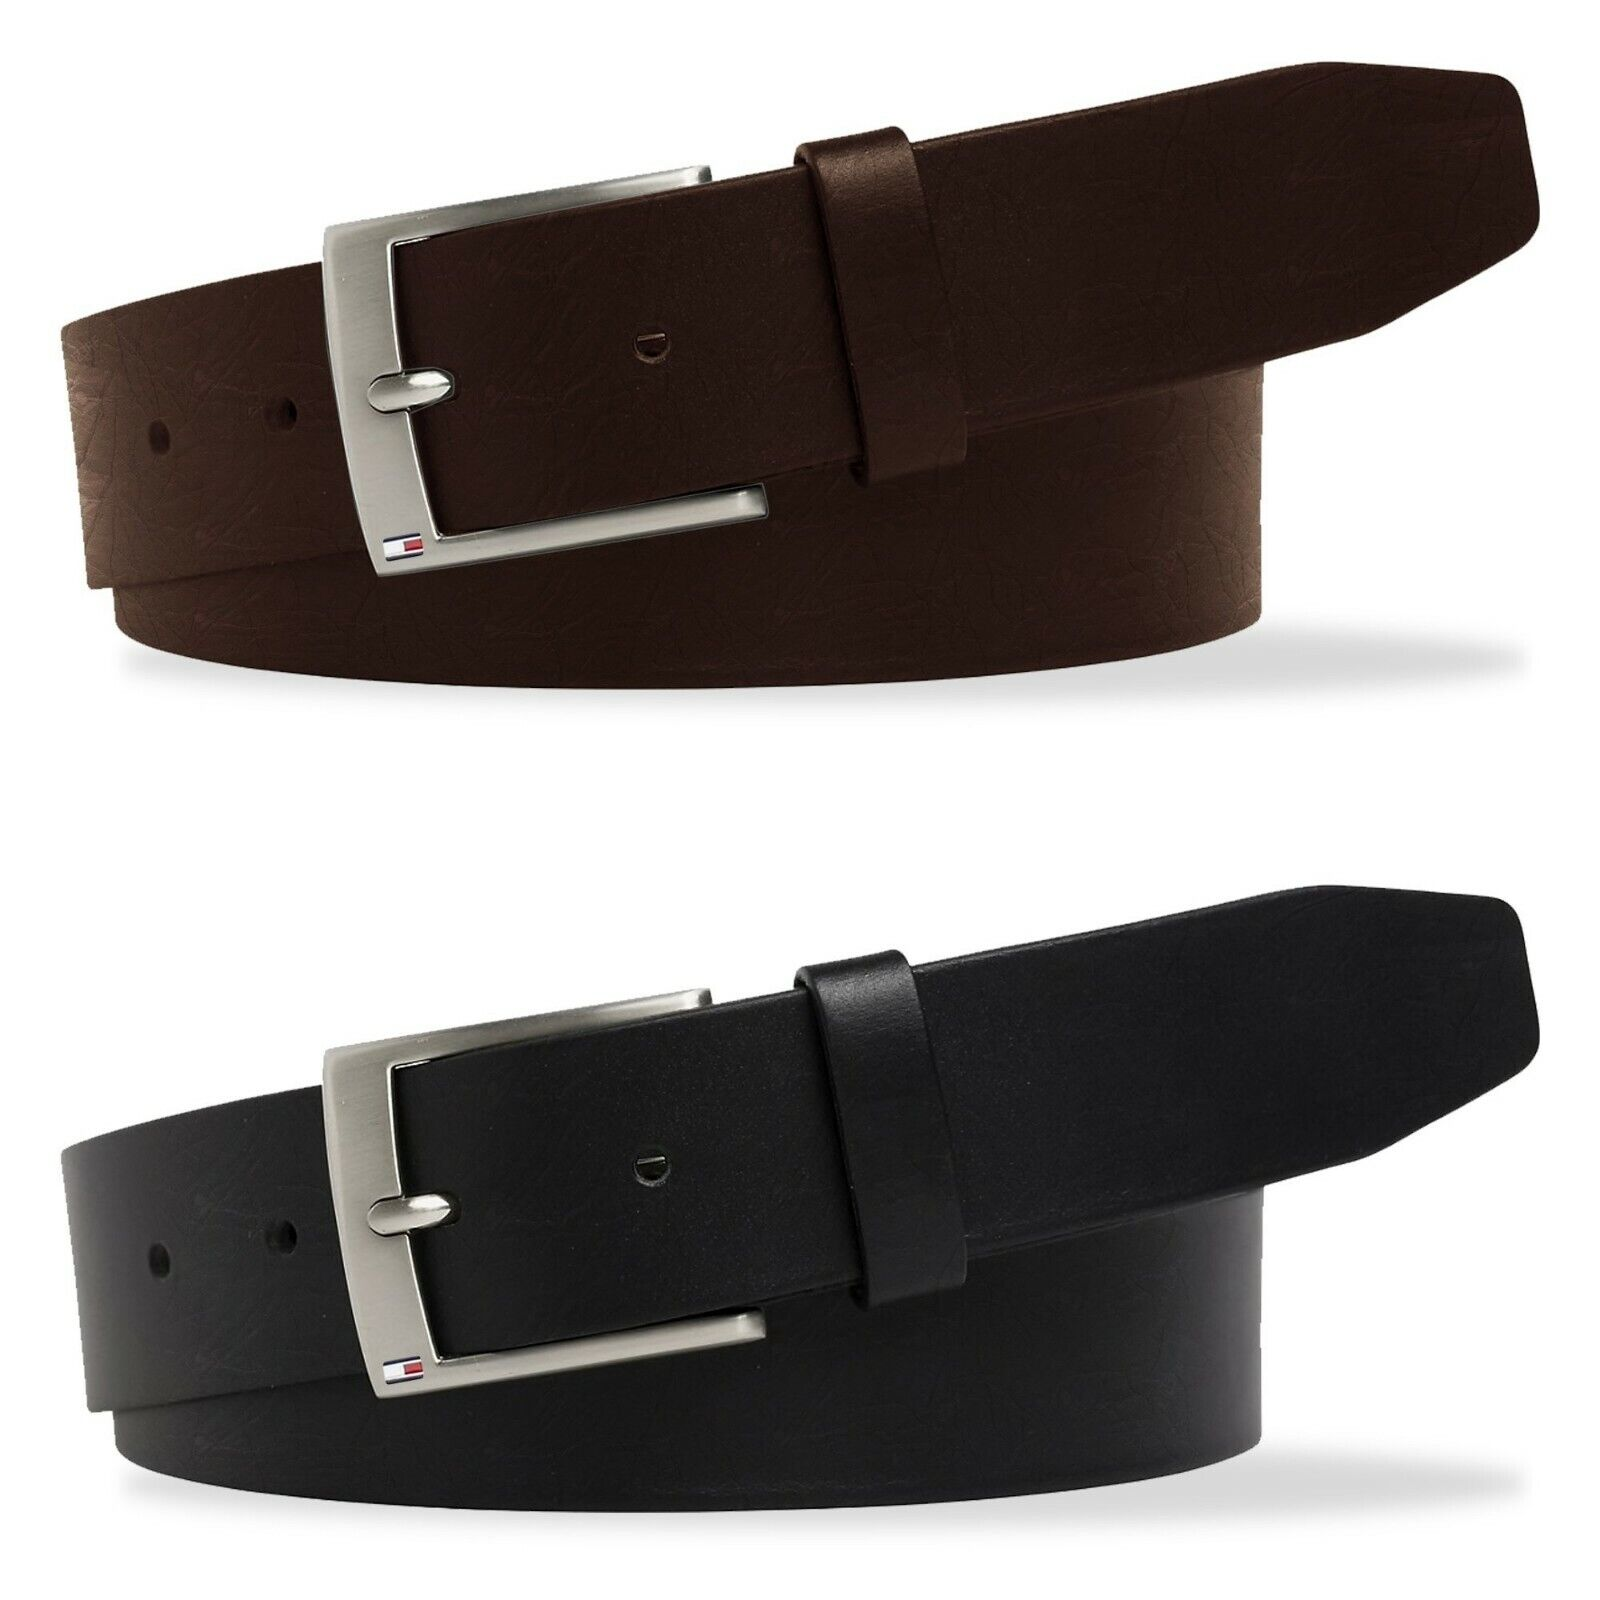 TOMMY HILFIGER MEN/'S LEATHER BELT BLACK OR BROWN 32 34 36 38 40 42 NWT MSRP $45